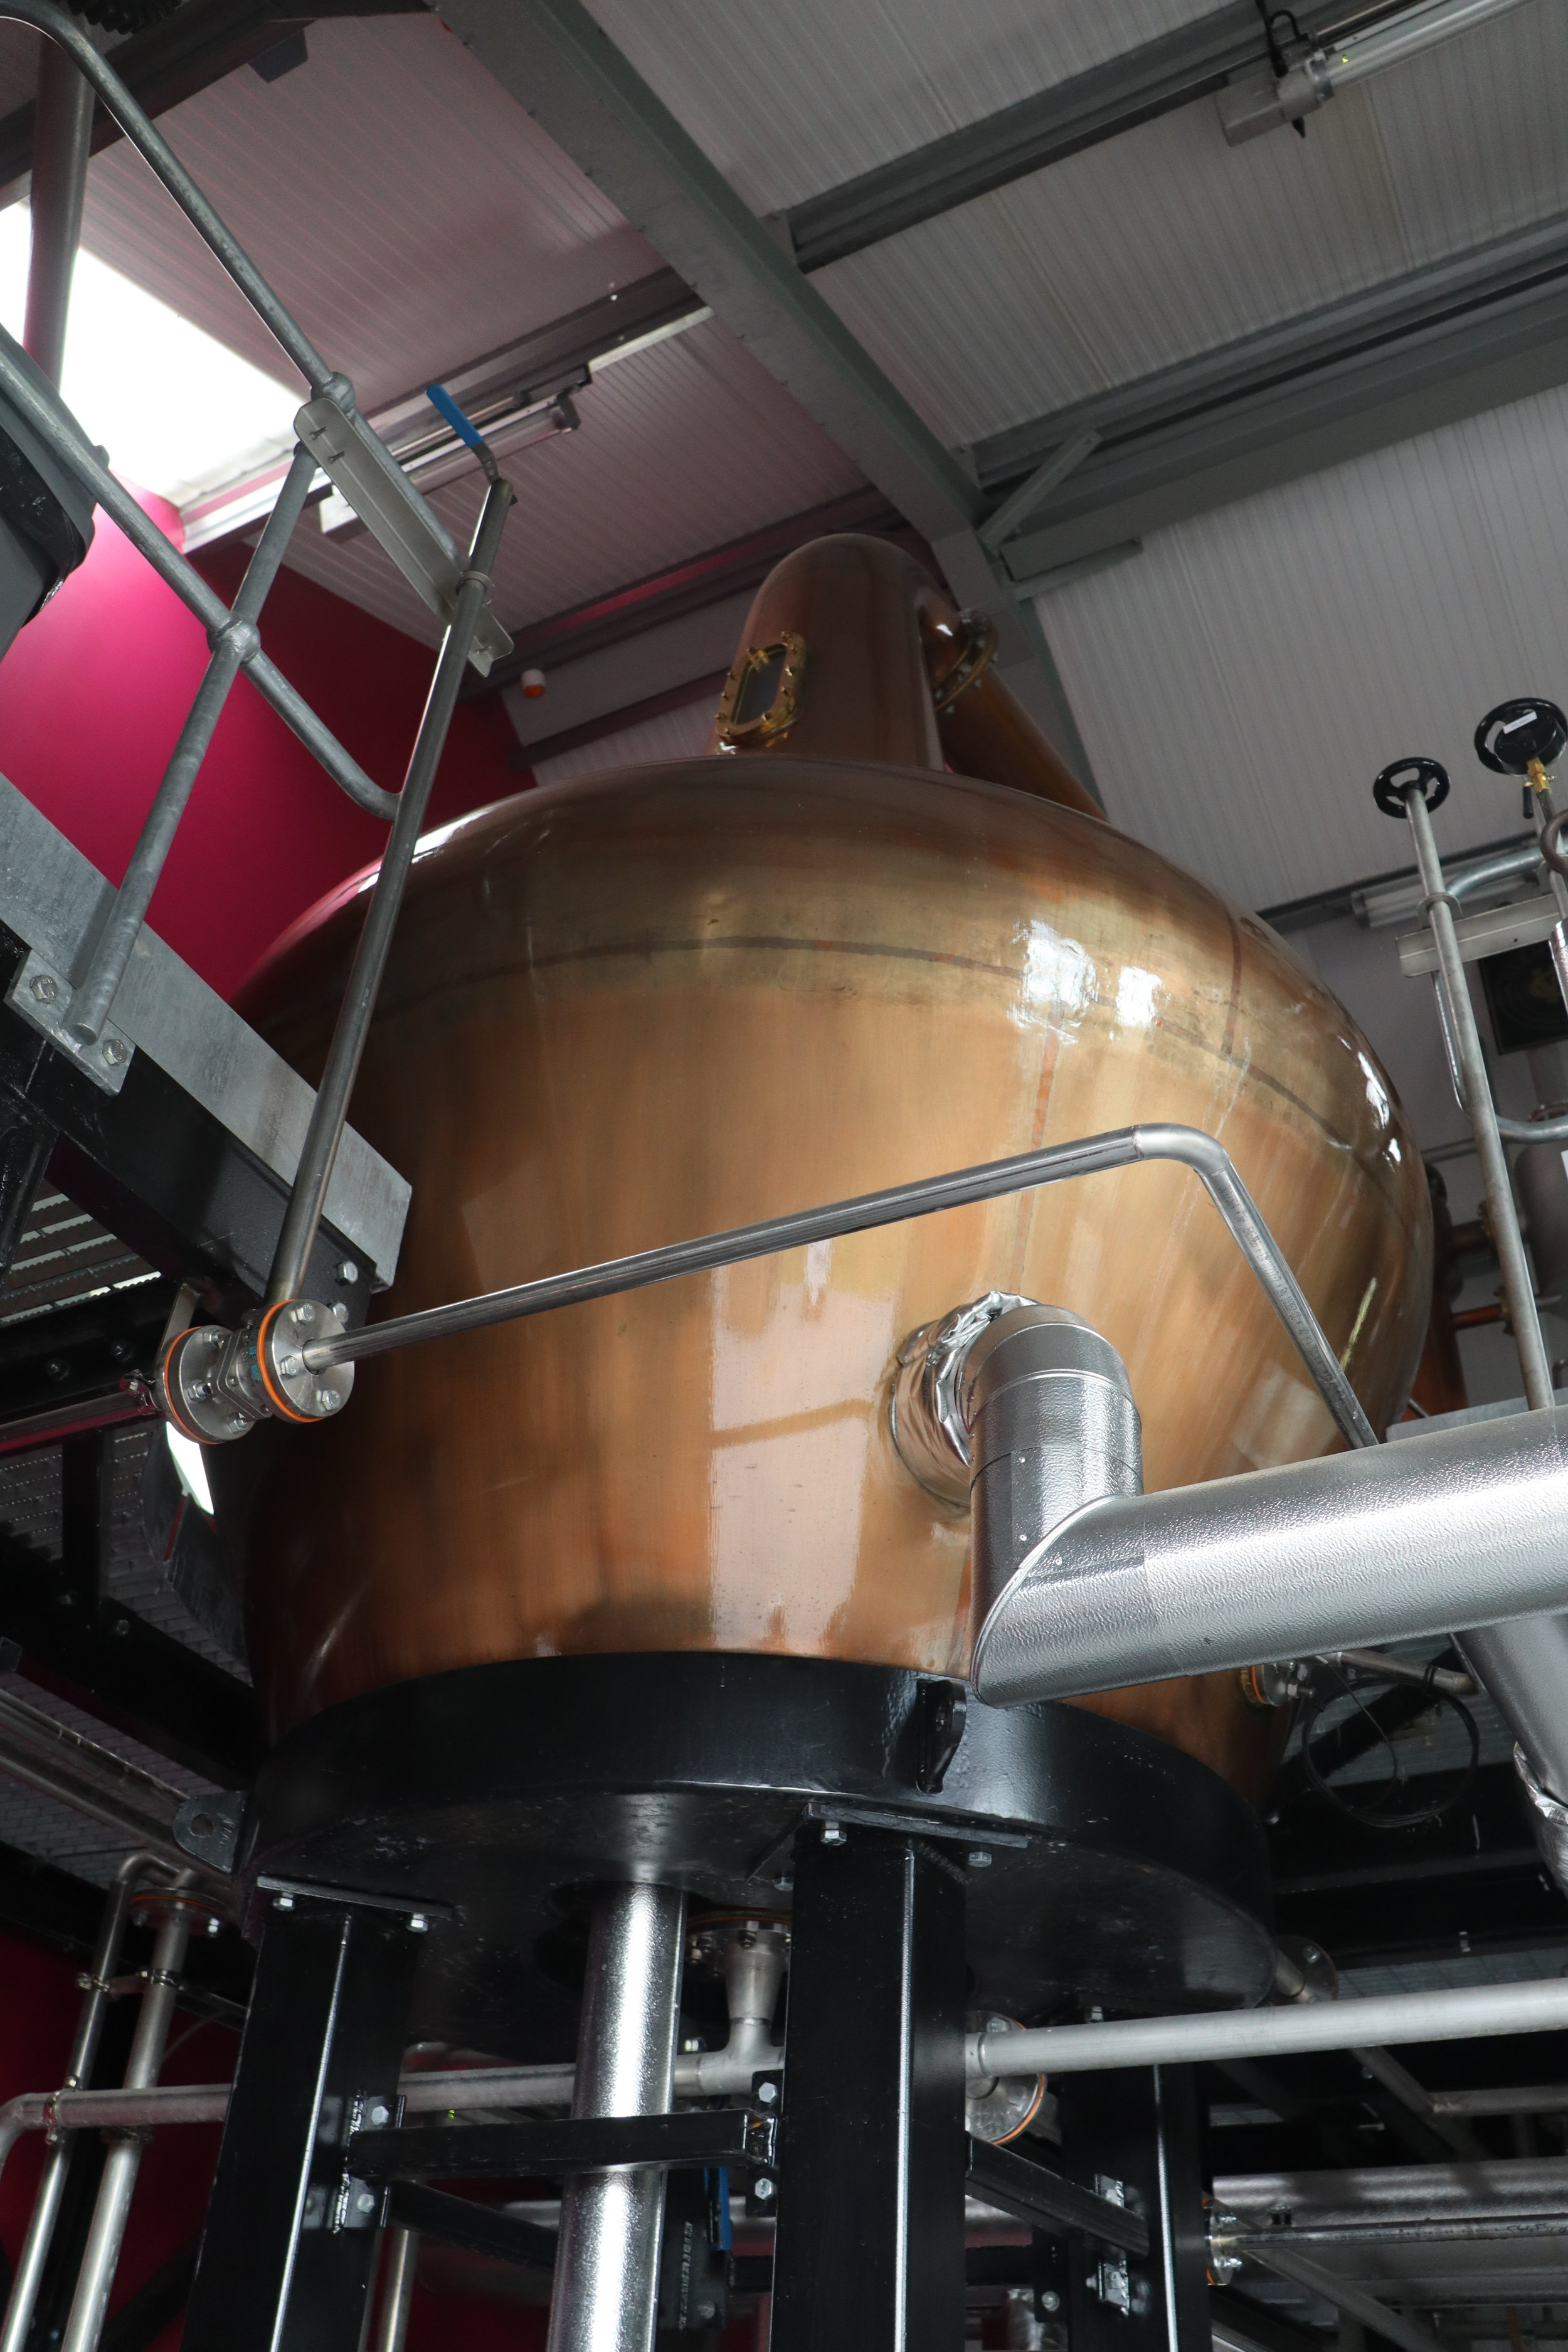 One of the two copper pot stills at GlenWyvis.